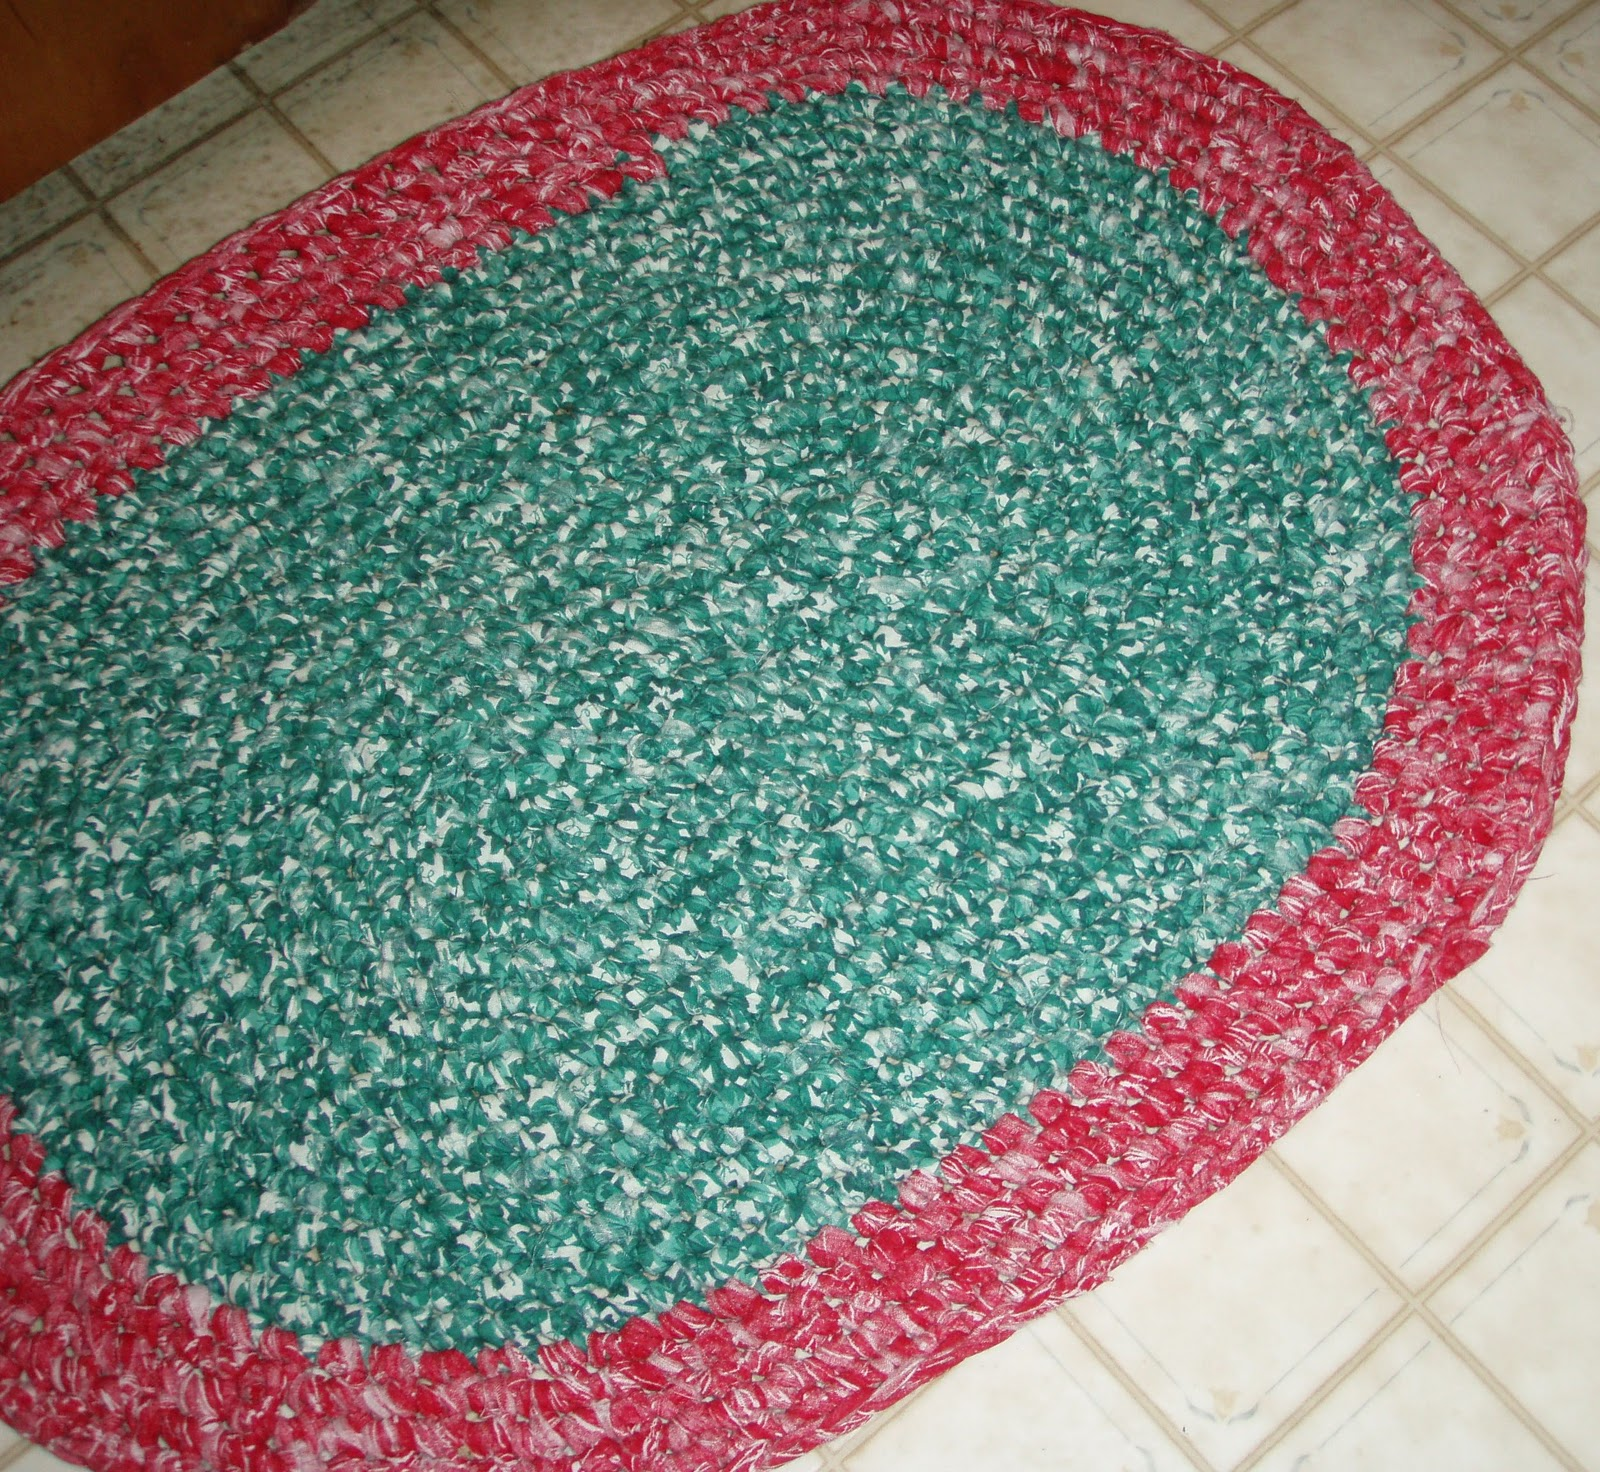 Moda Bake Shop: Braided Rag Rug